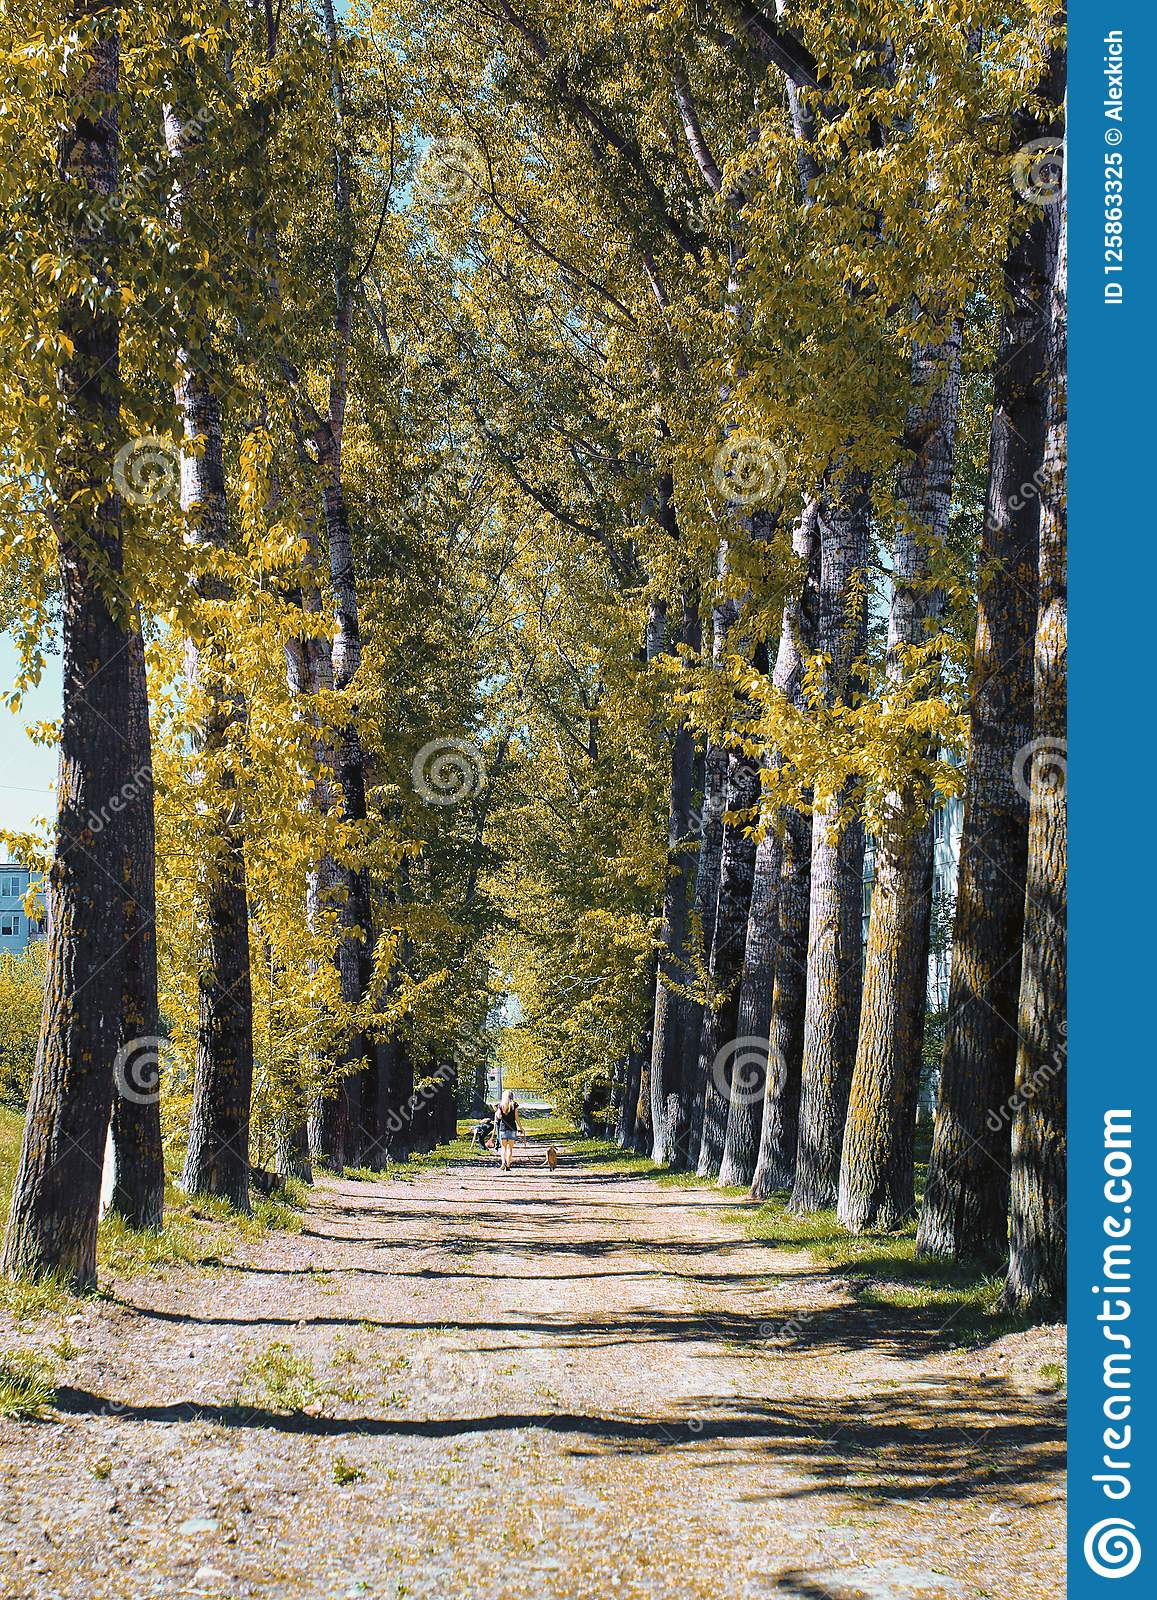 Alley of poplars with yellowing leaves in late summer